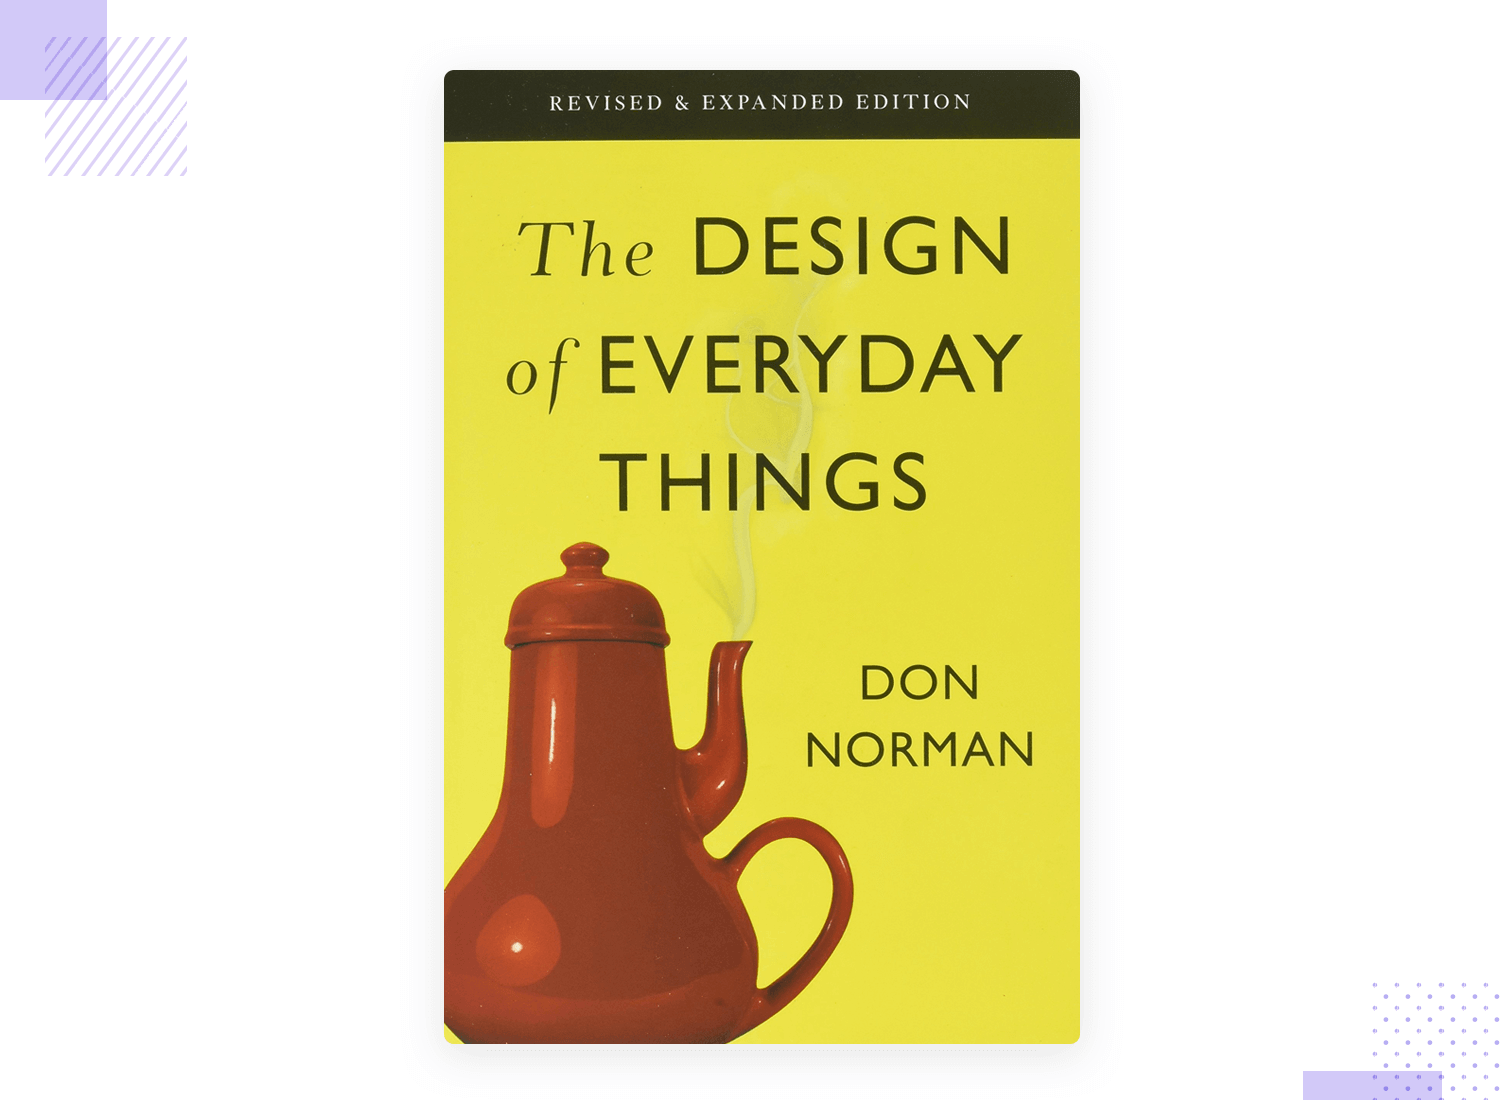 design of everyday things by don norman as ux book